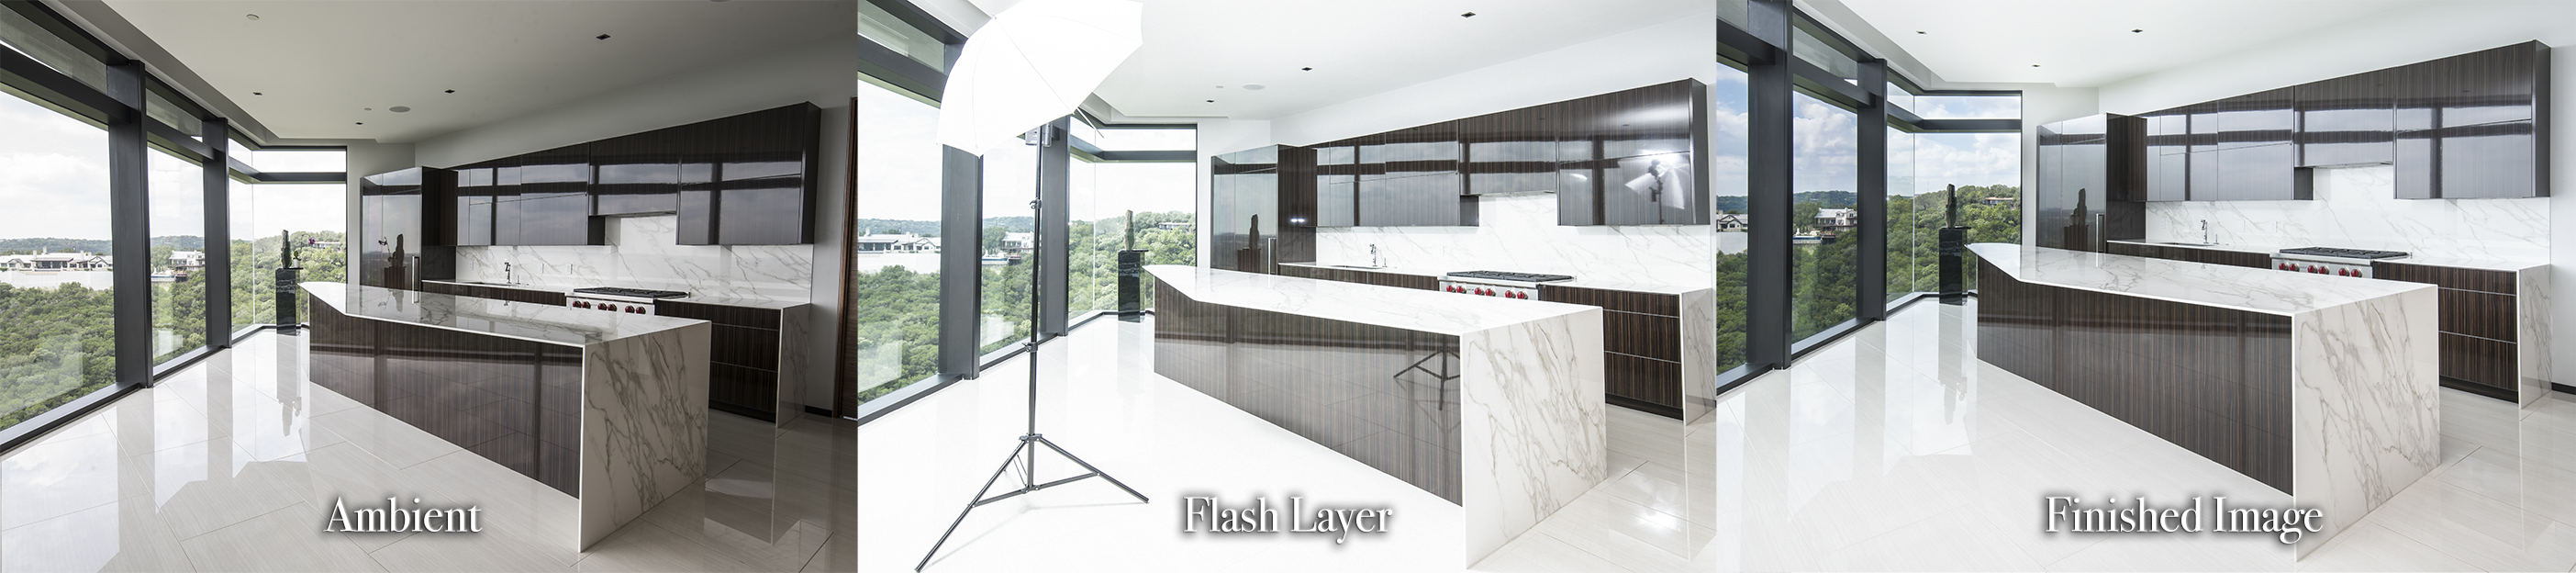 a triptych showing the process of using a Streaklight 360 flash to illuminate a kitchen interior